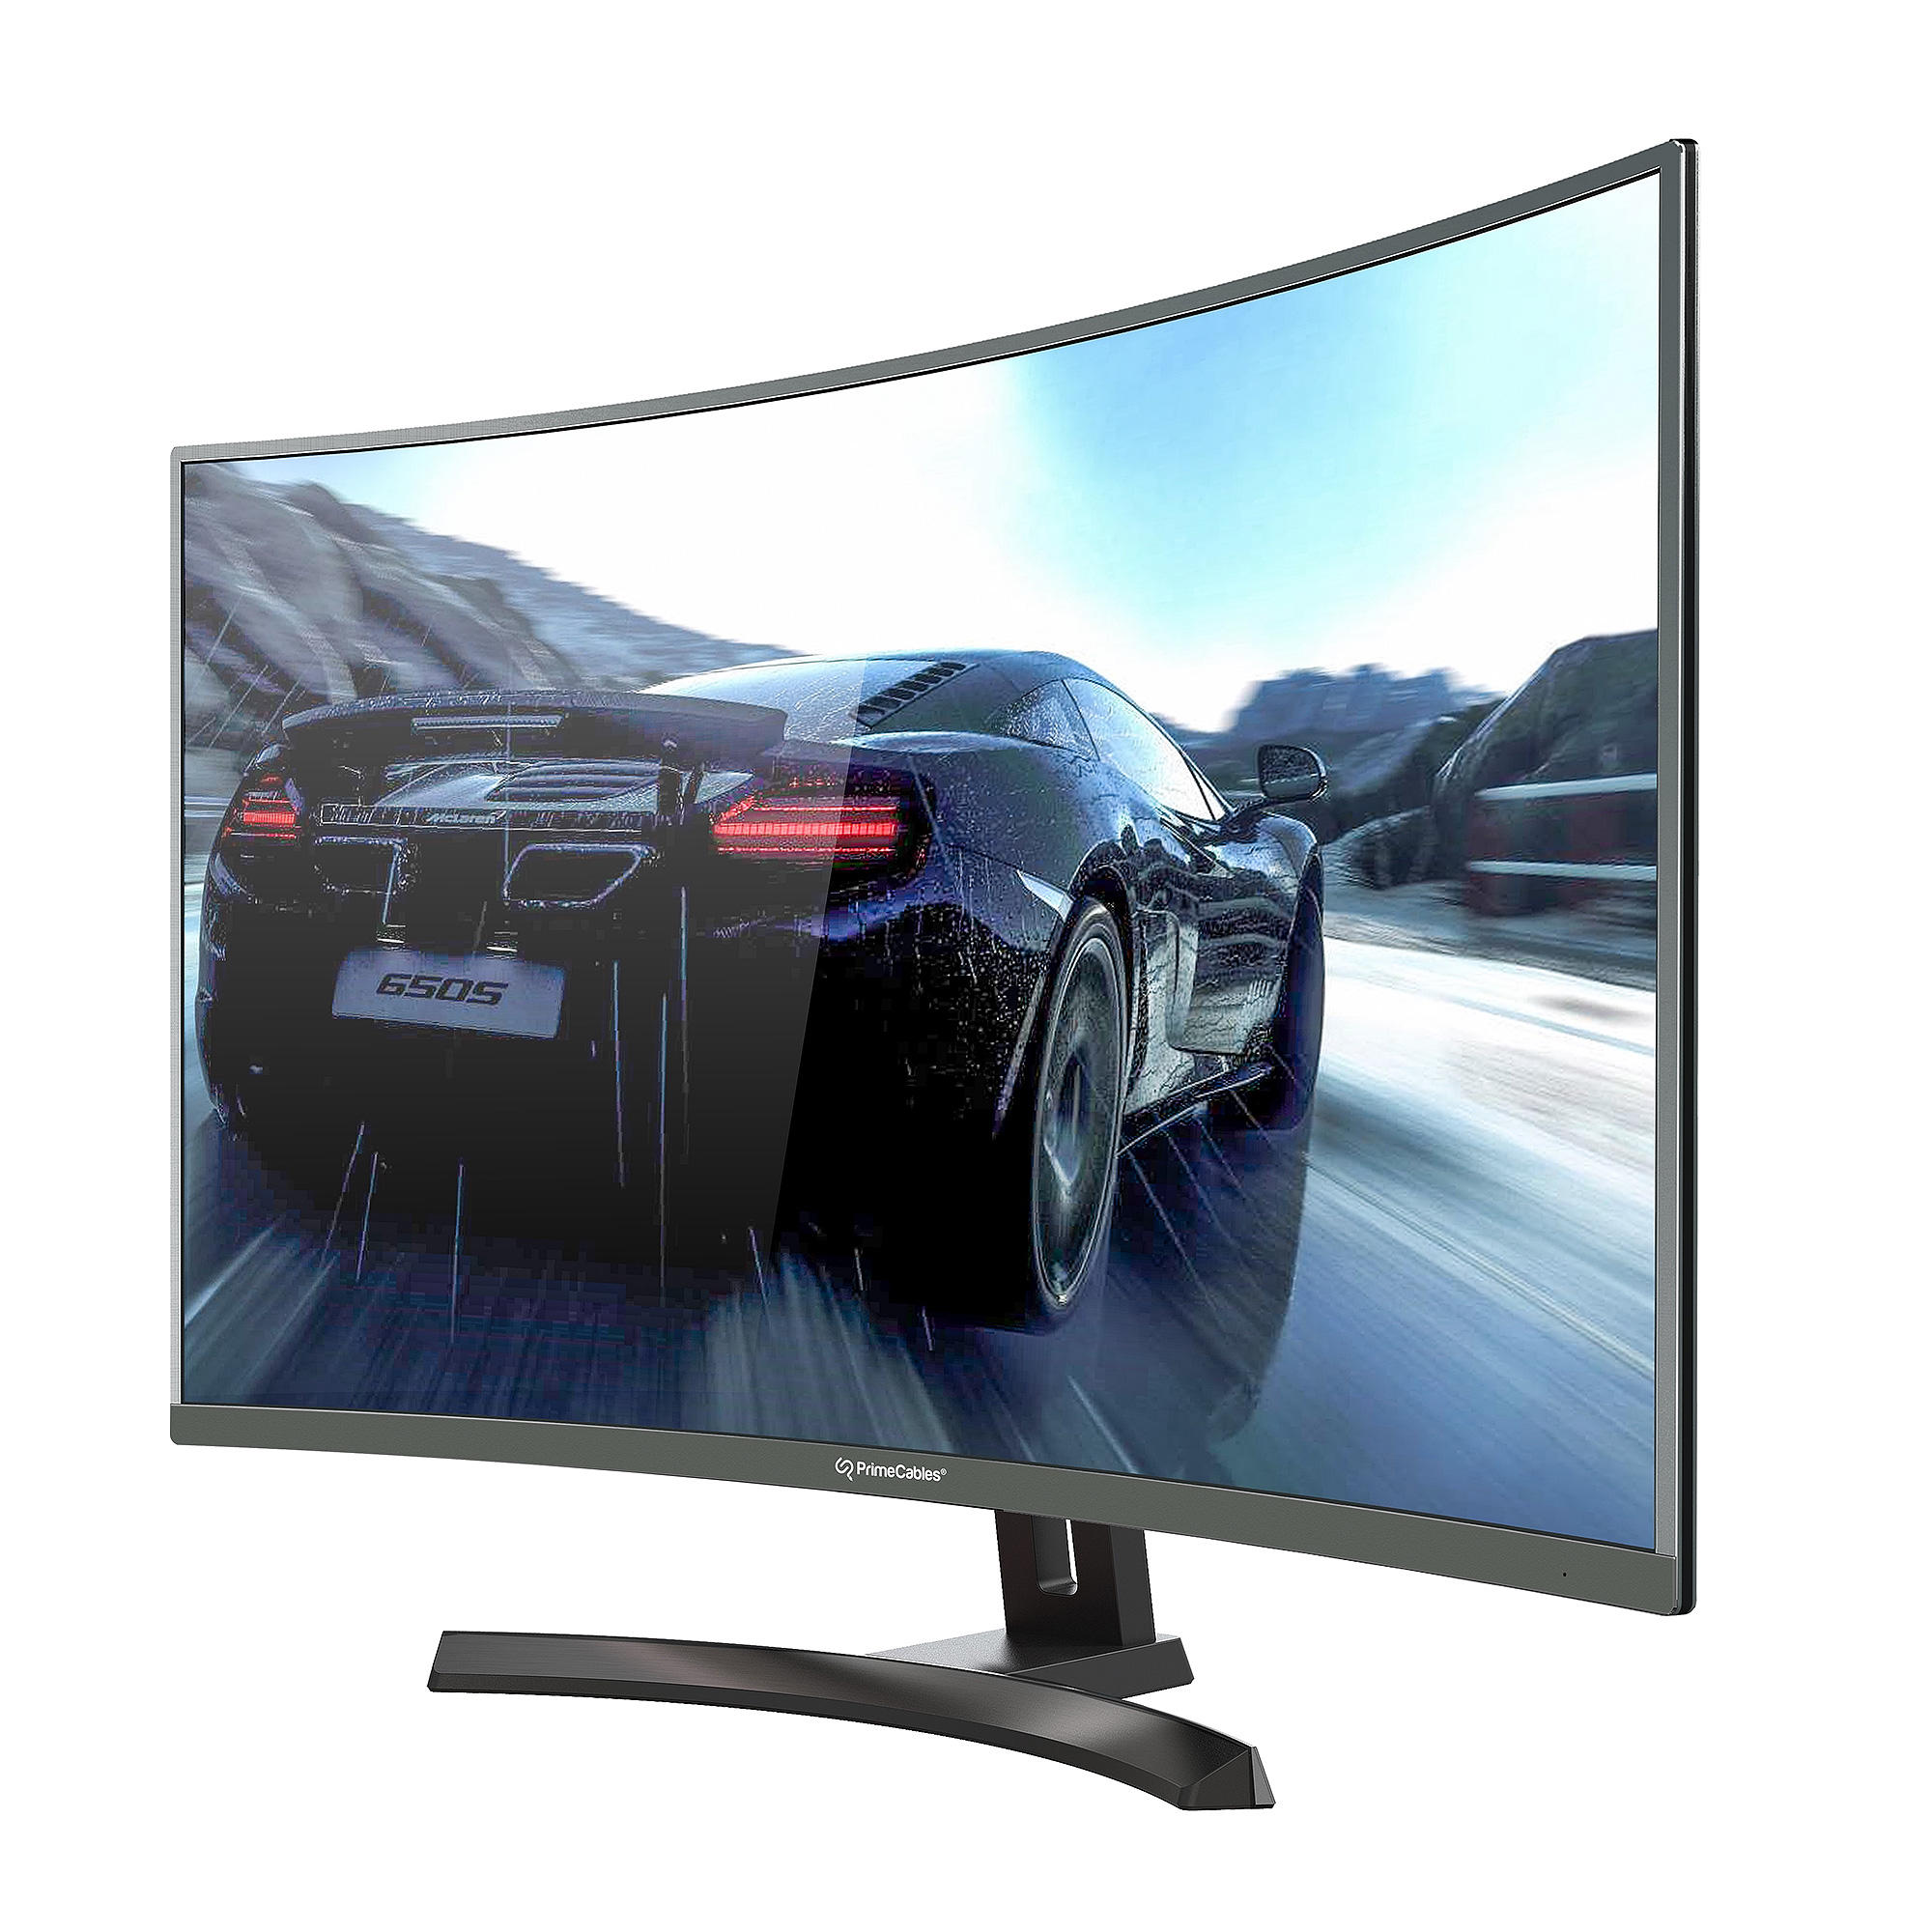 curved gaming monitor from PrimeCables.jpg